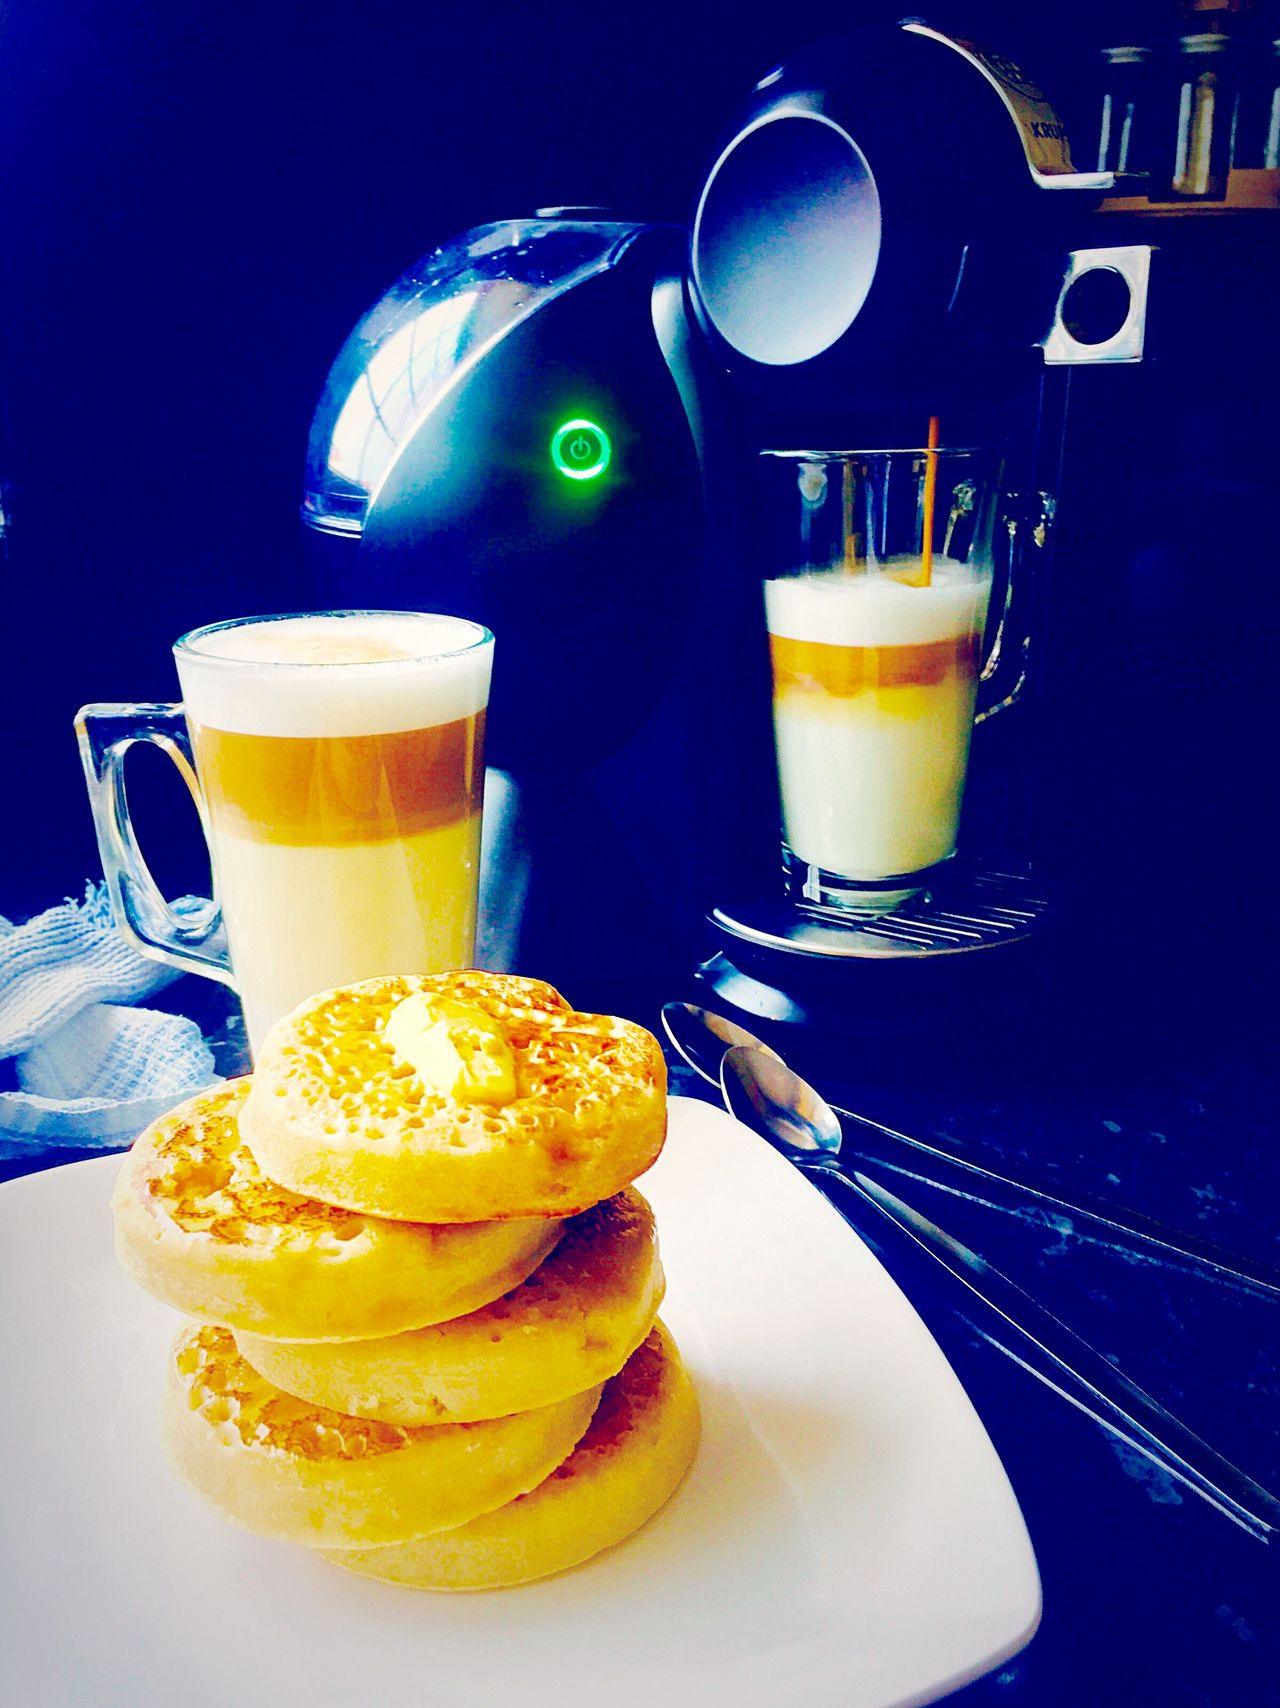 Coffee At Home Cappuccinocoffeelatte Enjoying Some Hot Buttered Crumpets To Warm Us Up Before Hitting The Shambles! Golden Buttery Honey Crumpets Coffeelovers Coffee Time My Favorite Breakfast Moment